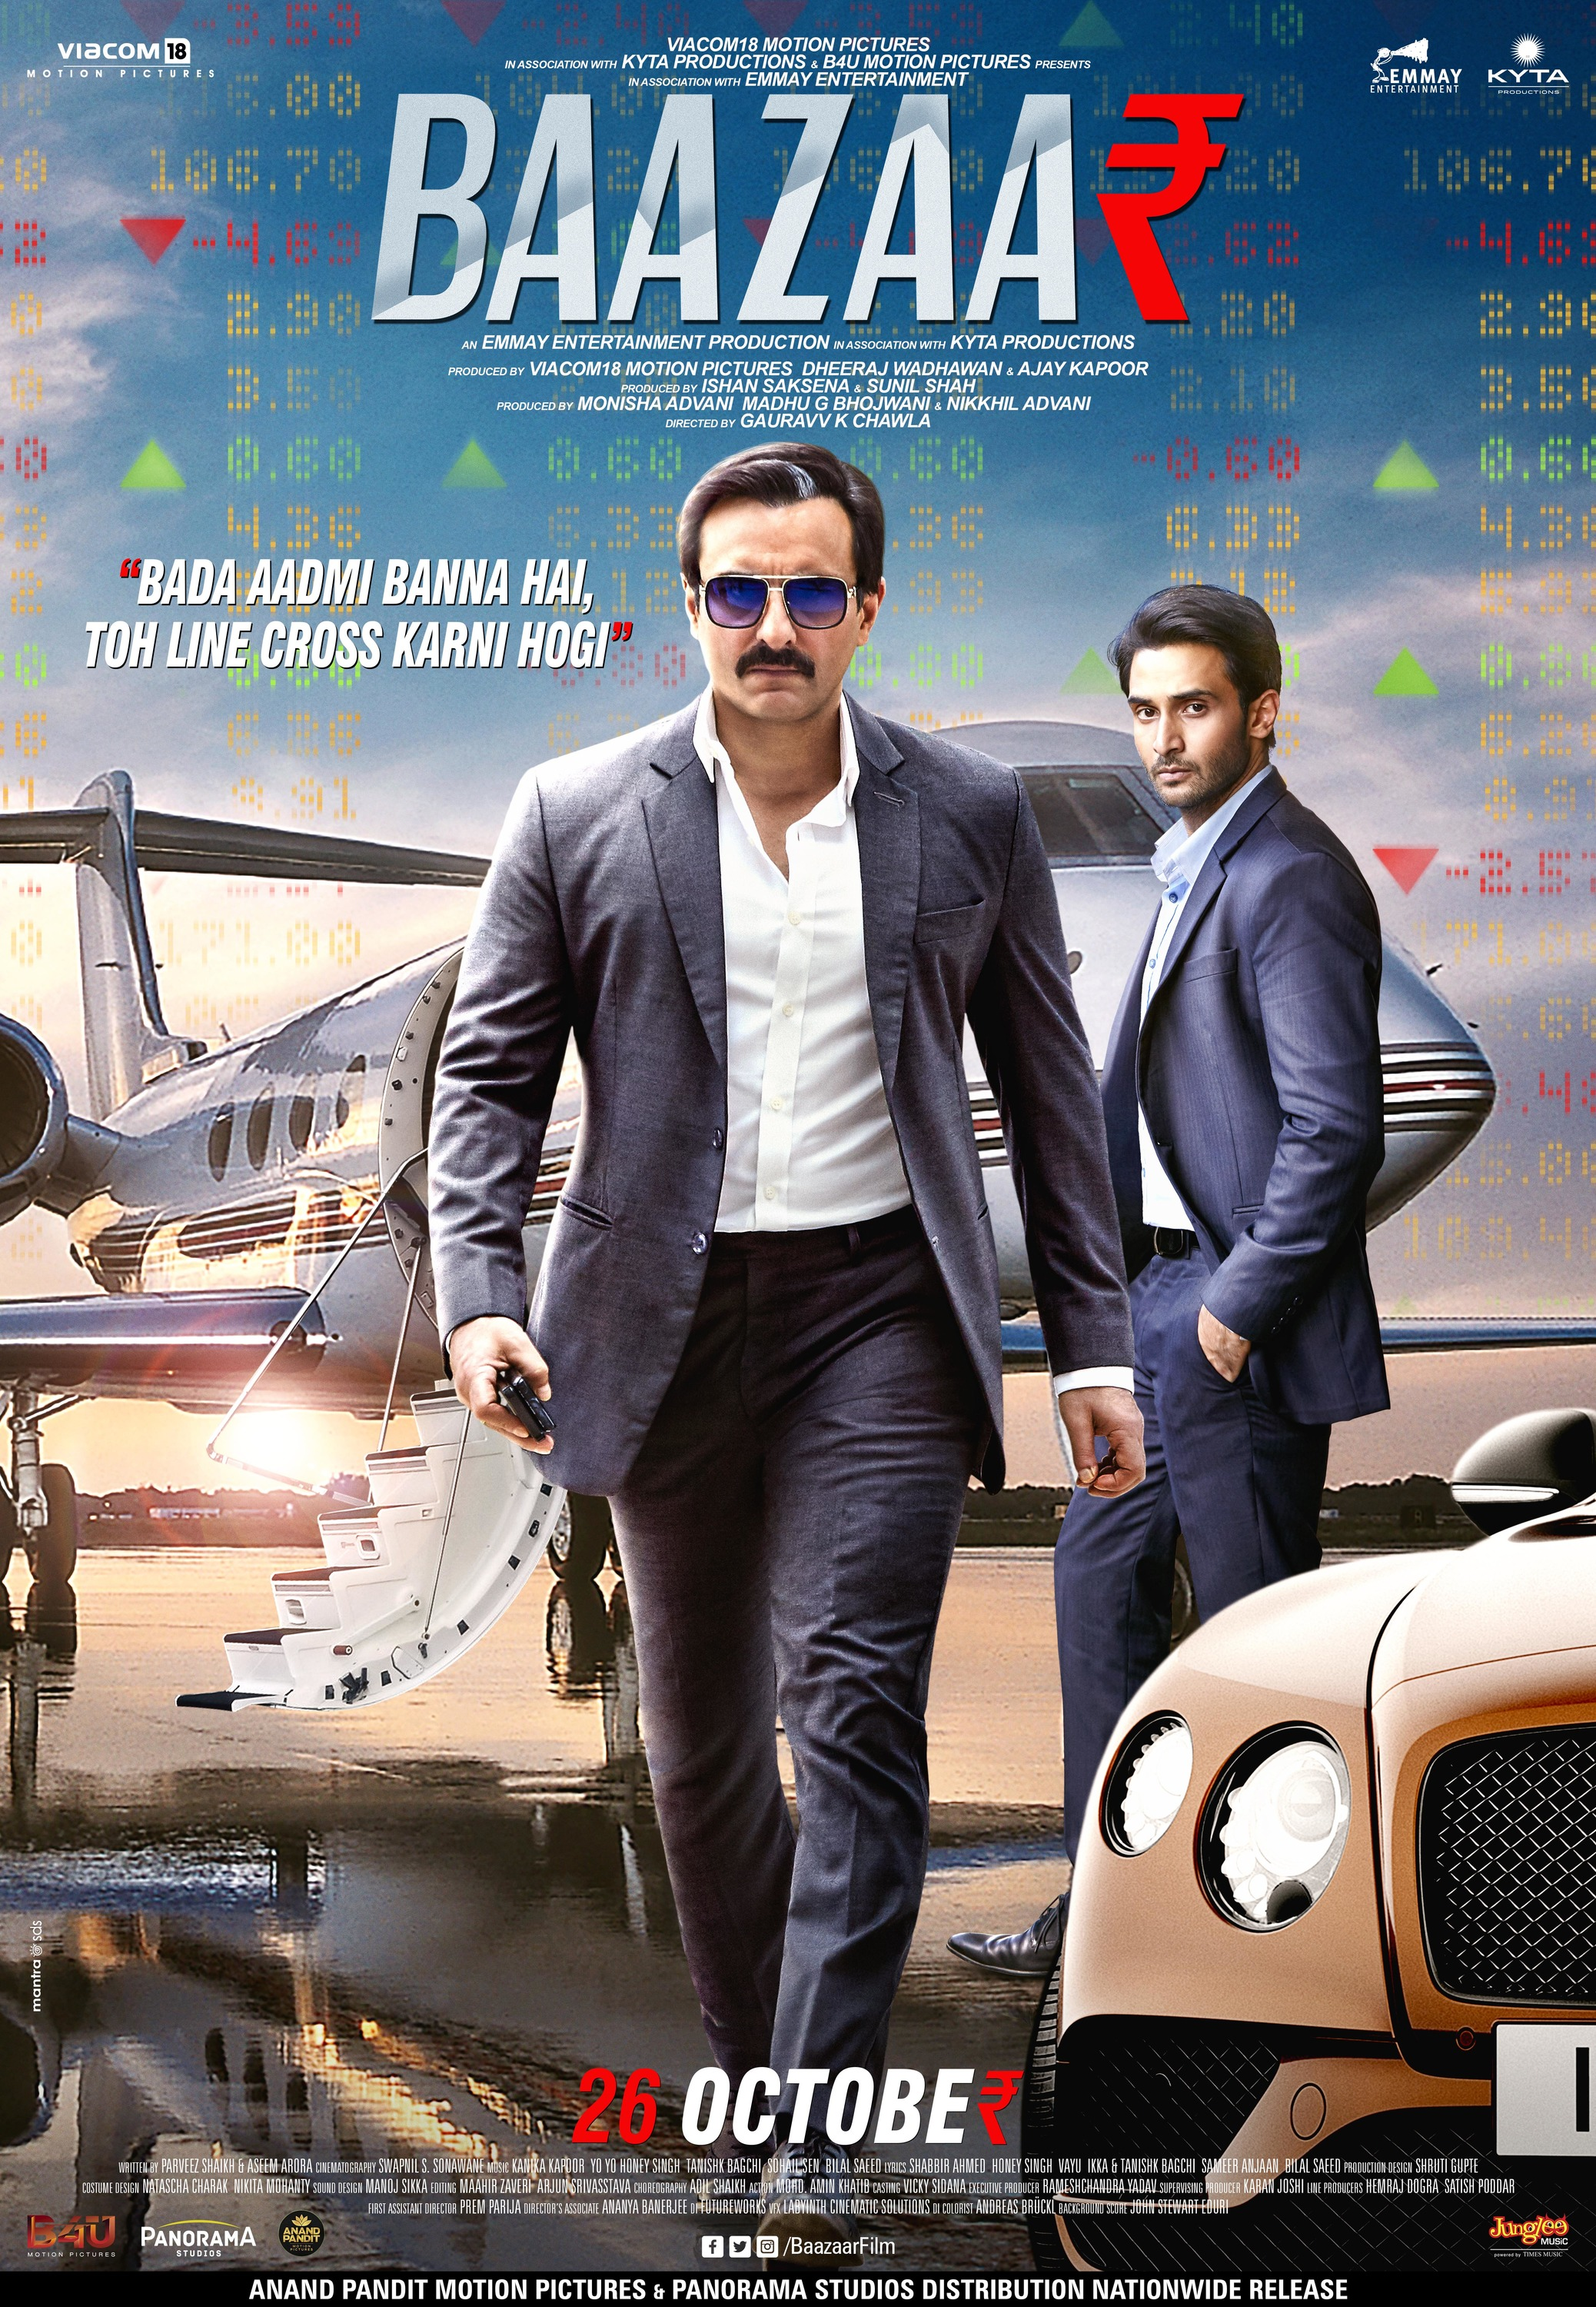 bazaar full movie 2018 dailymotion